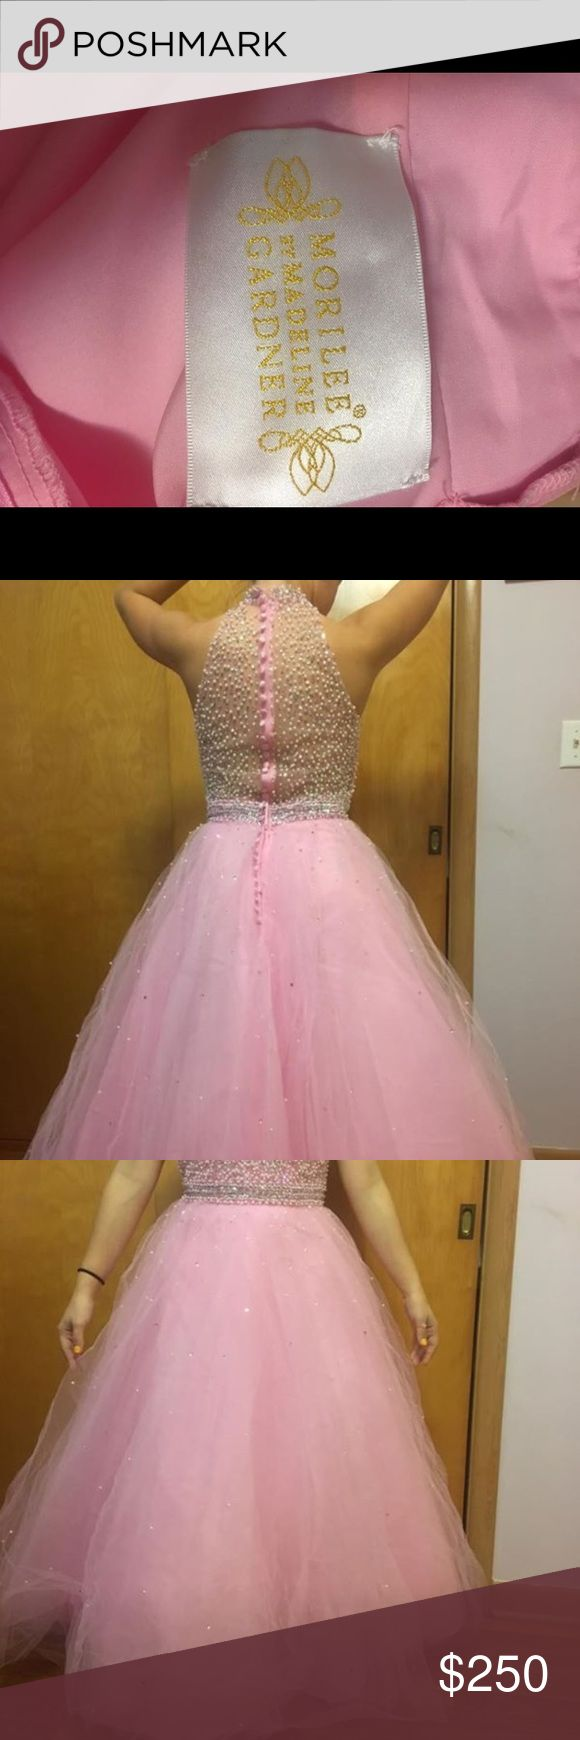 Mori Lee Prom Dress bubble gum pink. altered for a size 0 with 34C chest 5'0. worn once for junior prom Mori Lee Dresses Prom